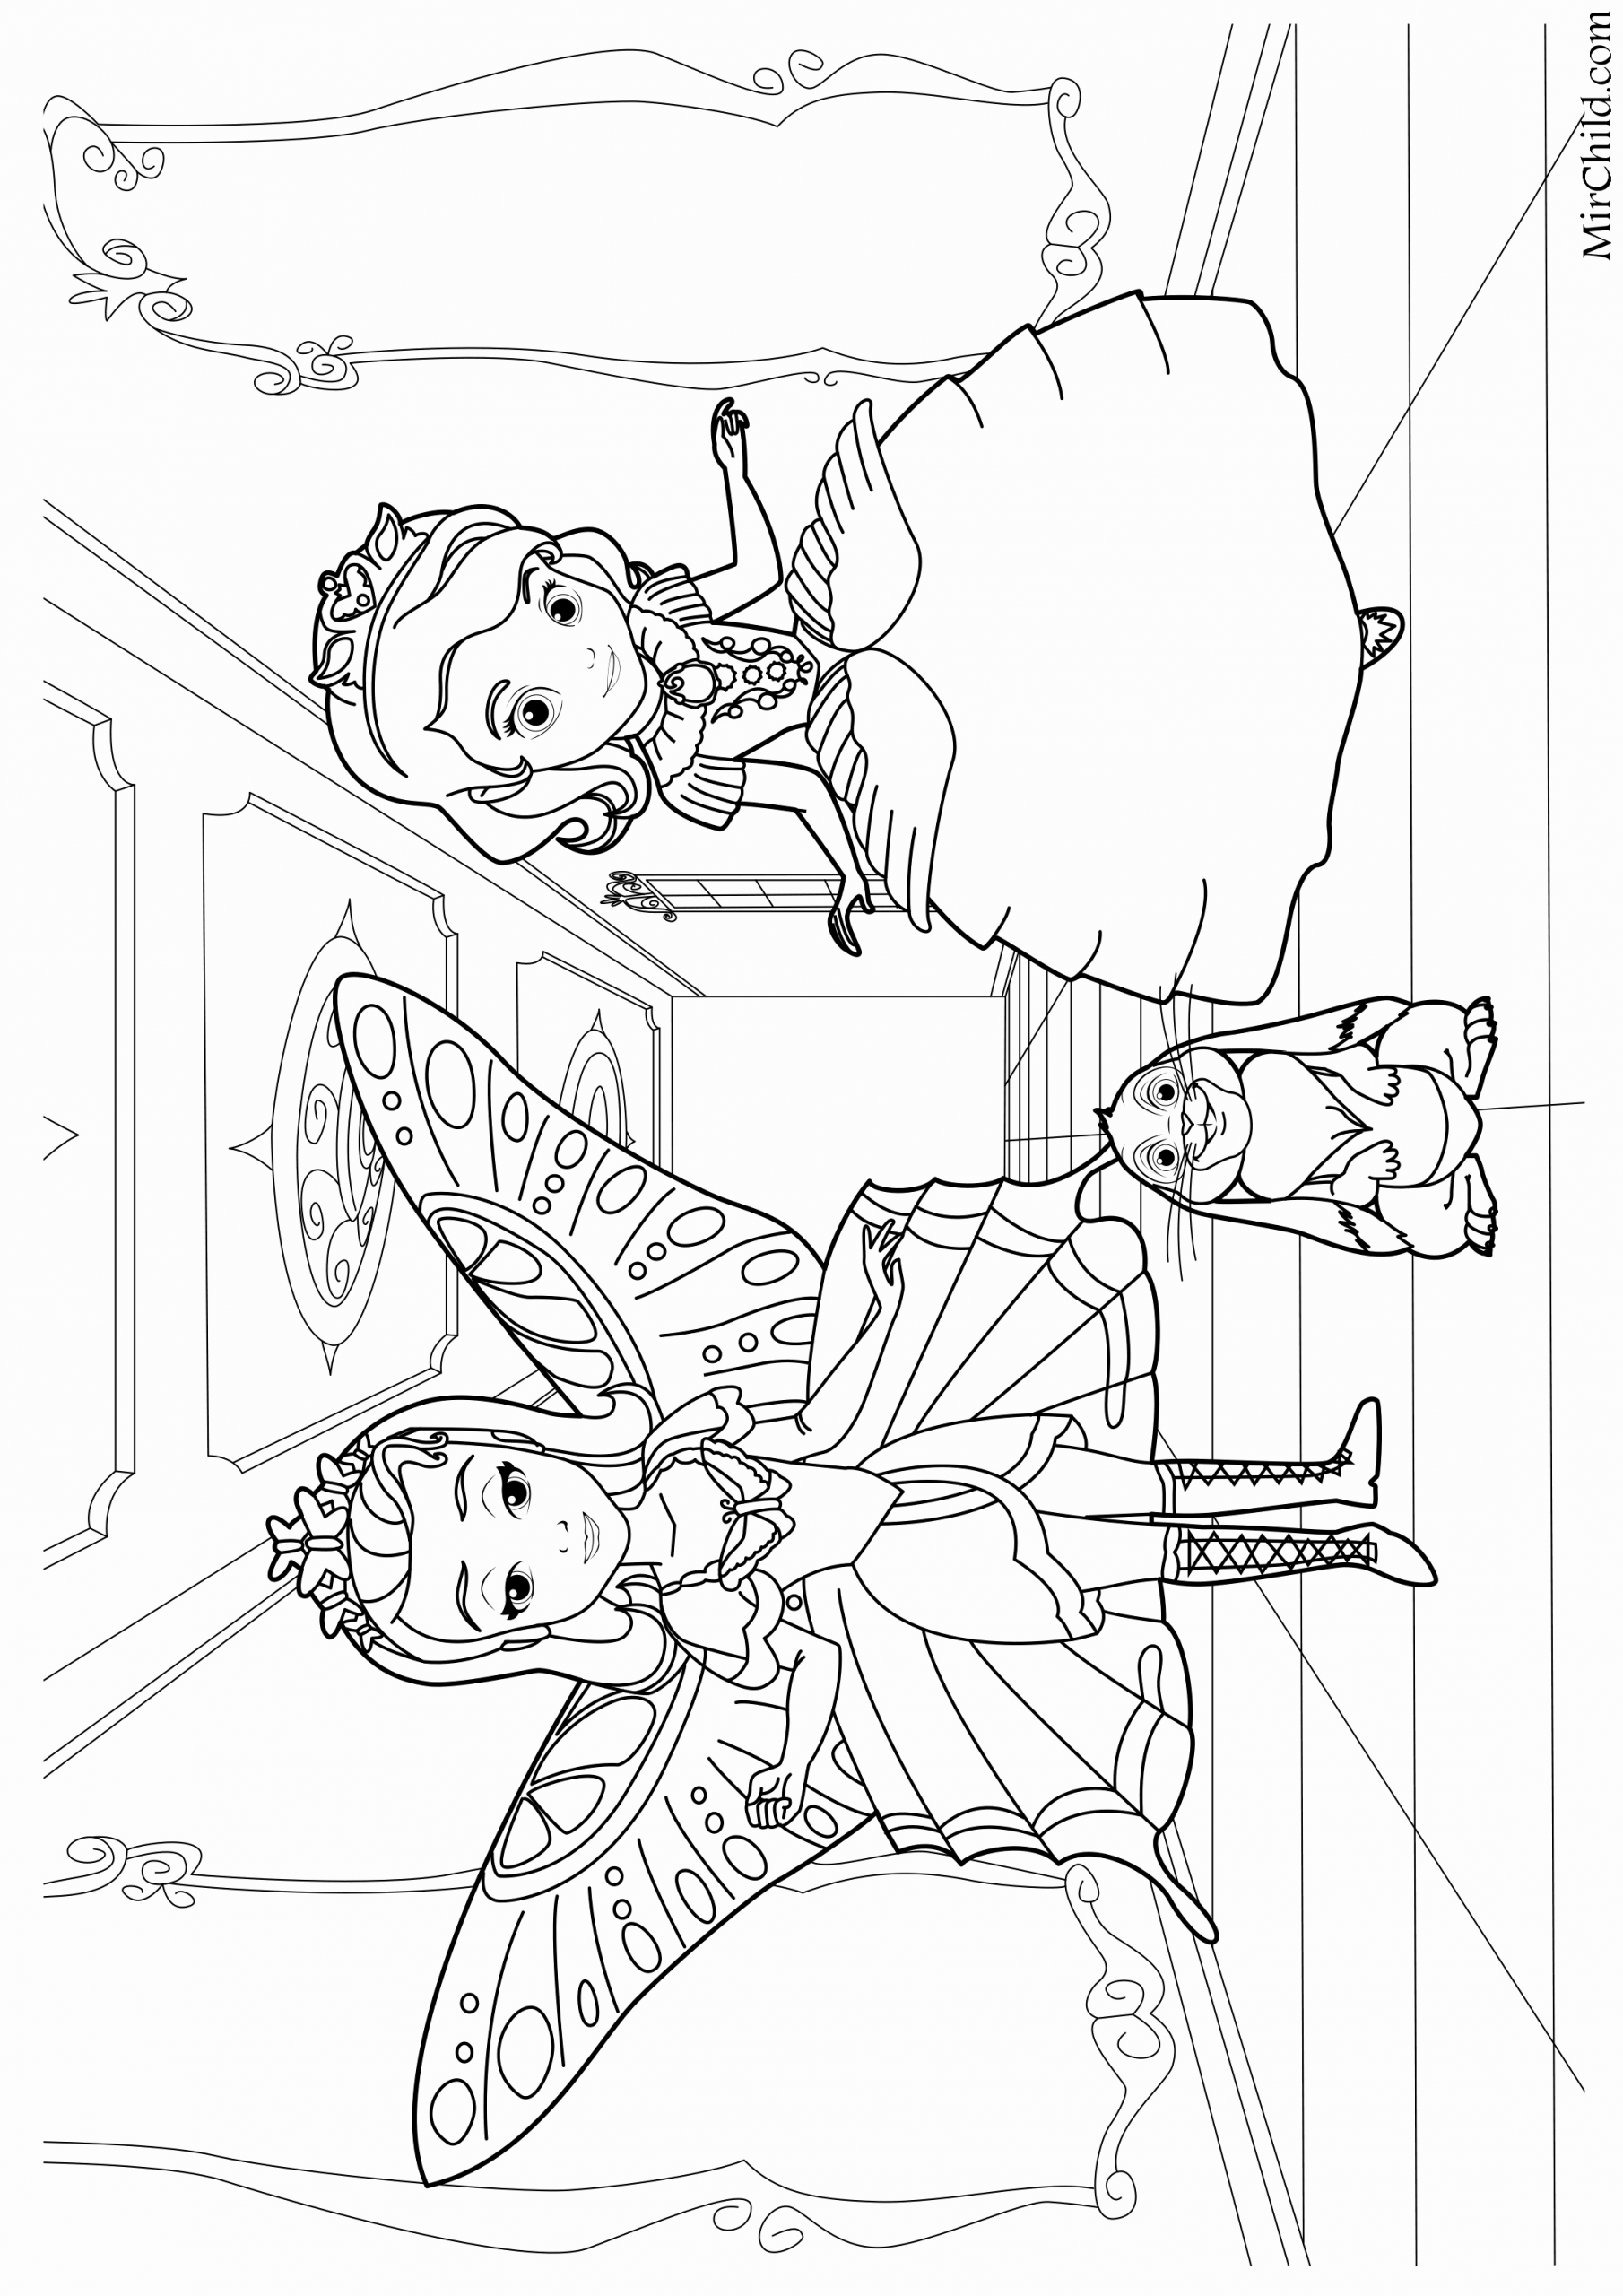 Elena Of Avalor Coloring Book Elegant Coloring Pages Elena Avalor Sketch Coloring Page Coloring Books Batman Coloring Pages Cars Coloring Pages